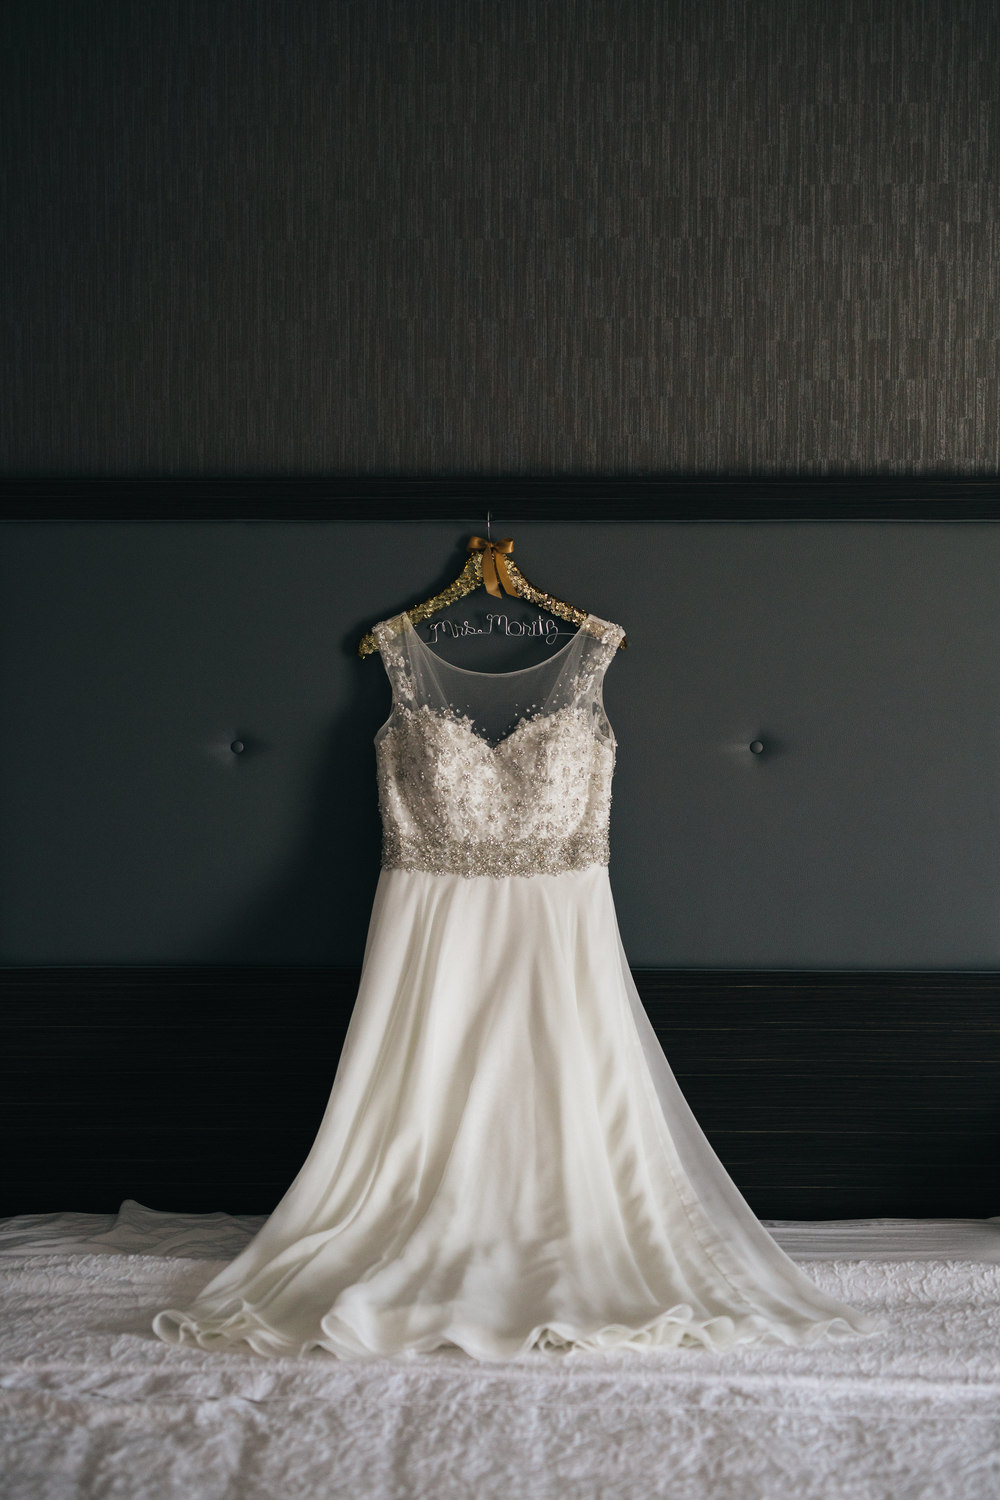 Elegant wedding dress with lace details for summer wedding in Oregon, Ohio.